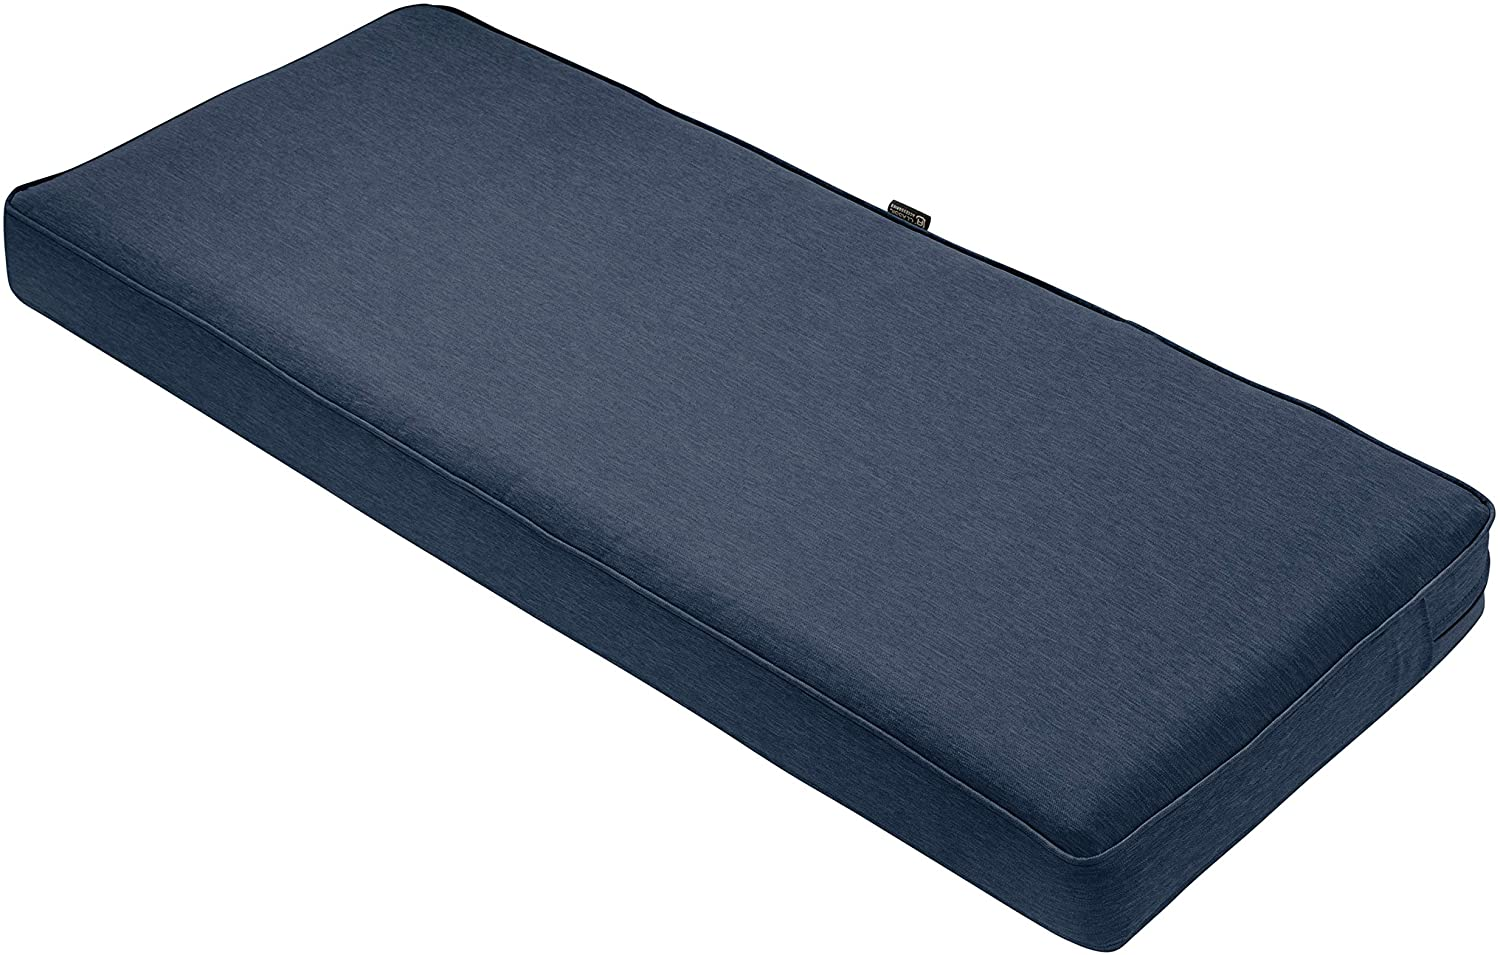 "Classic Accessories Montlake Bench Cushion Foam & Slip Cover, Heather Indigo, 42x18x3"" Thick"